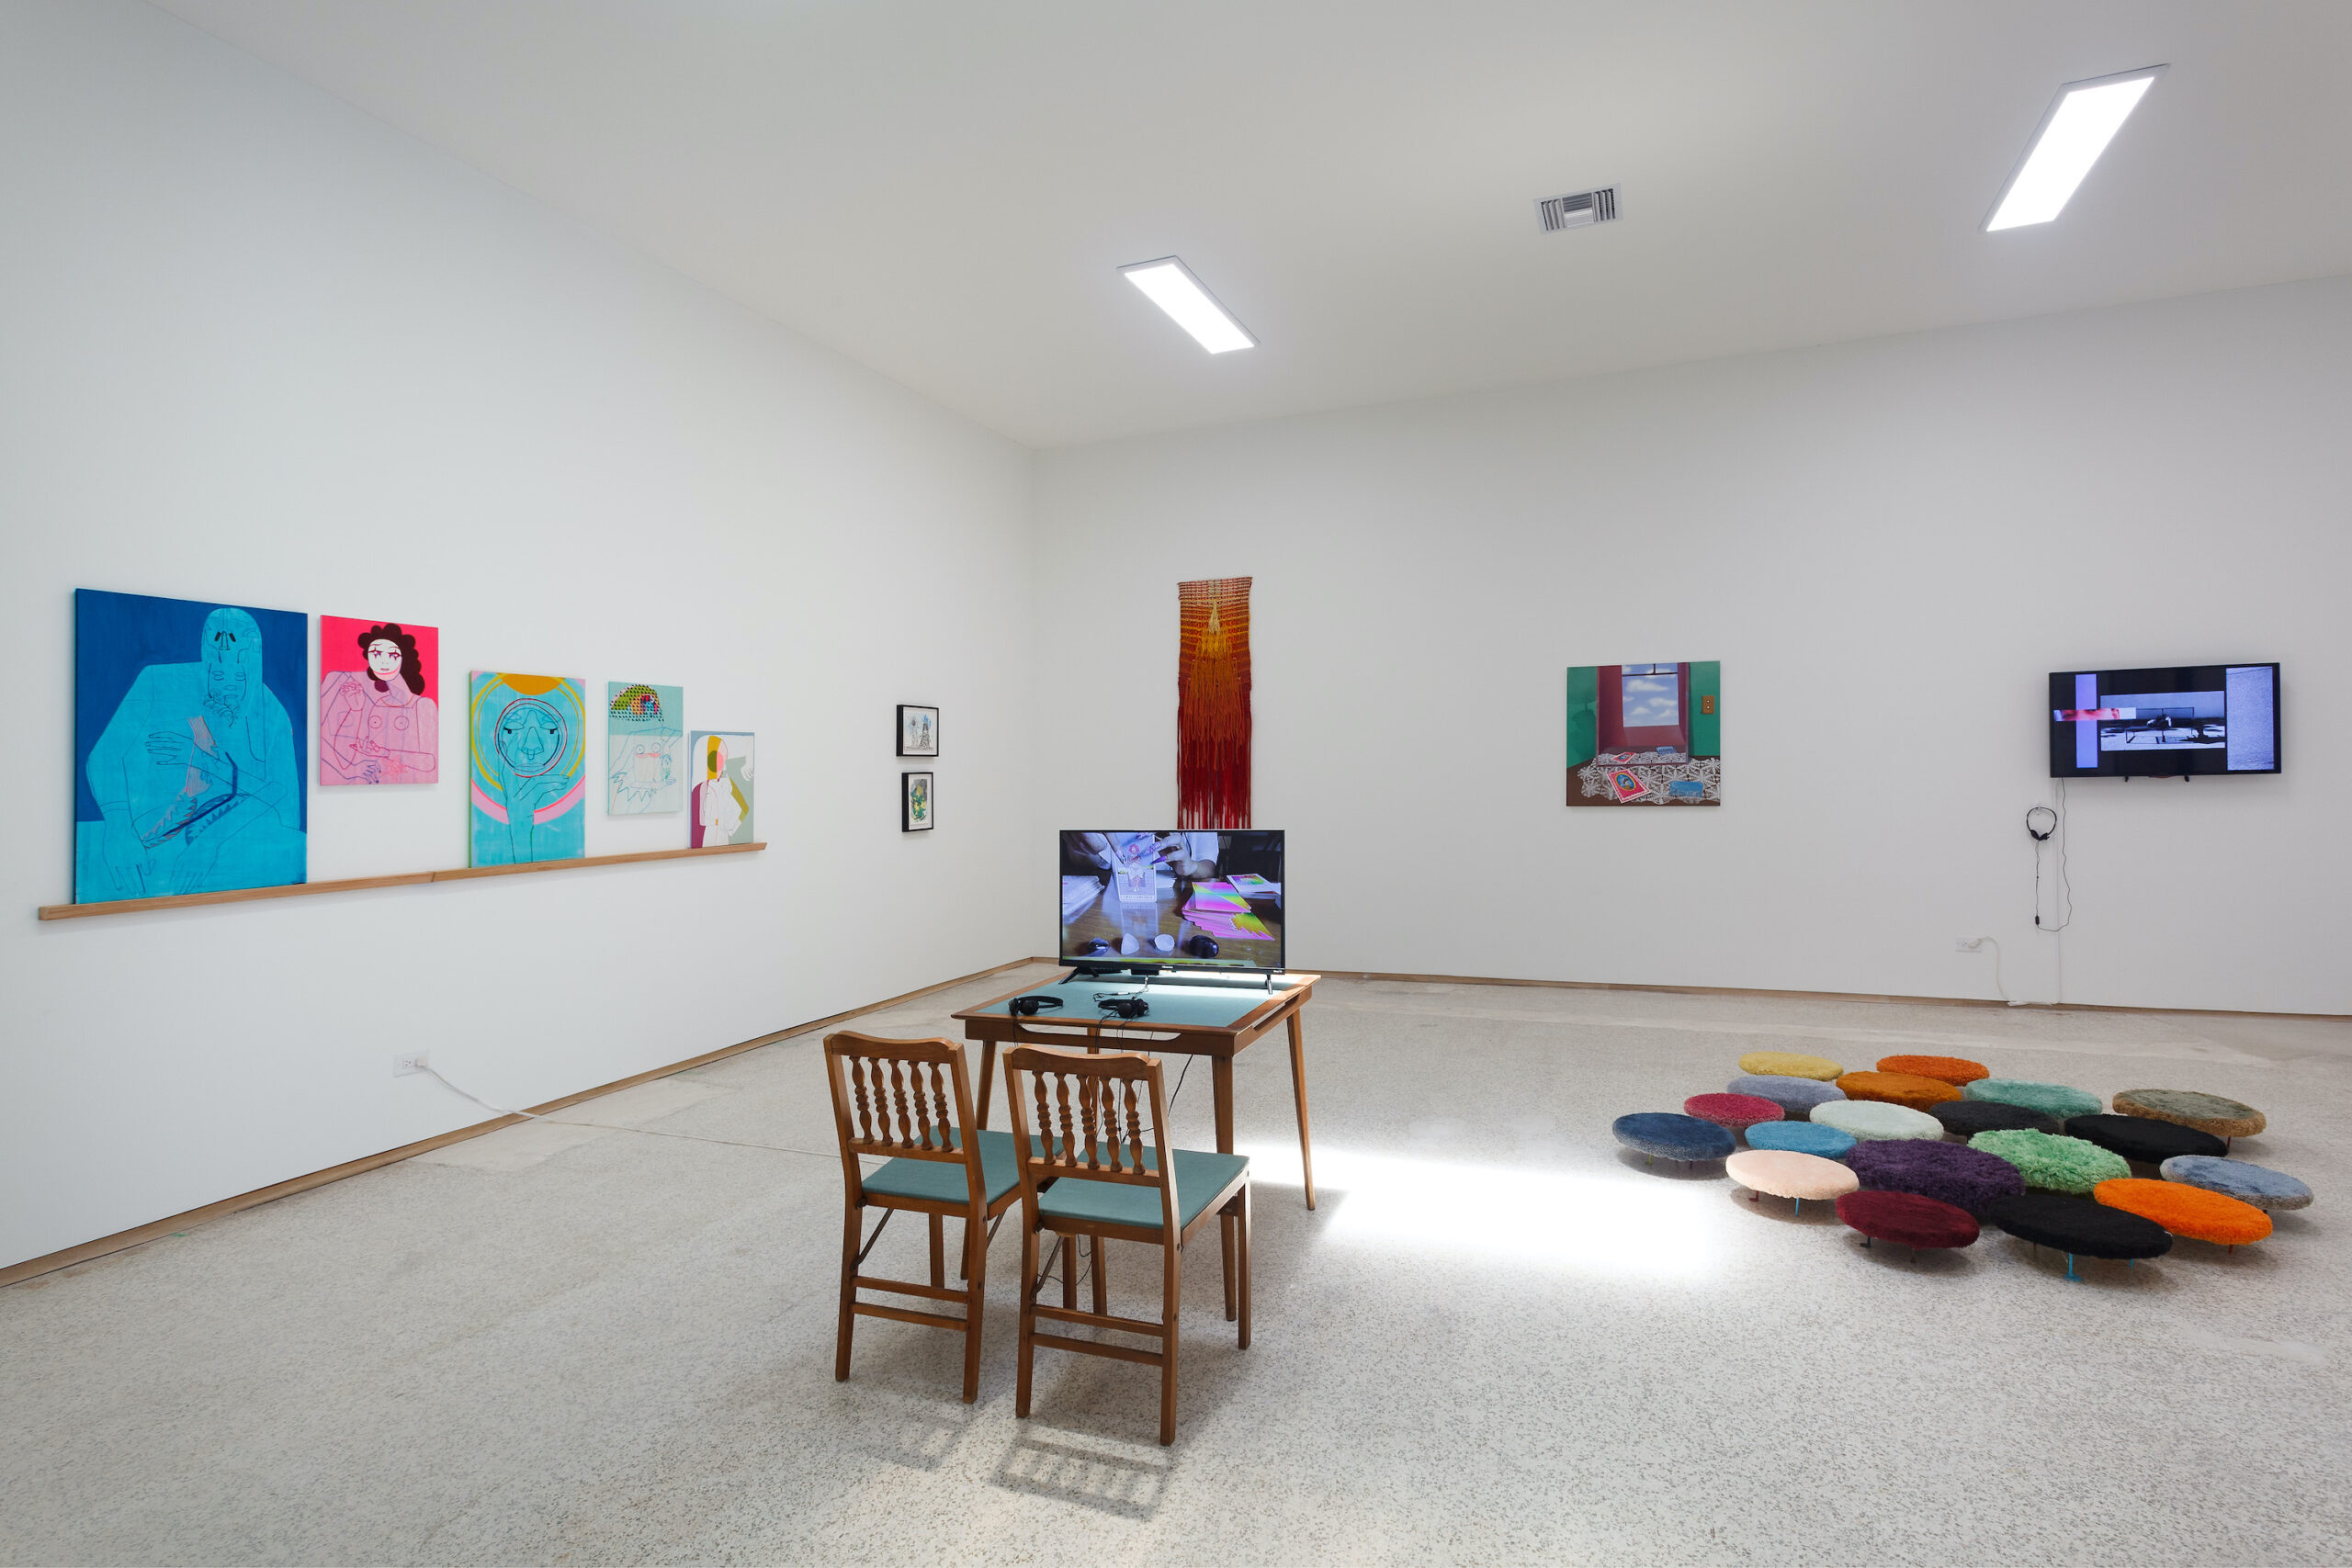 our constellations: astral embraces and tactual consciousness (Installation view l), 2021, Emerson Dorsch, Miami FL